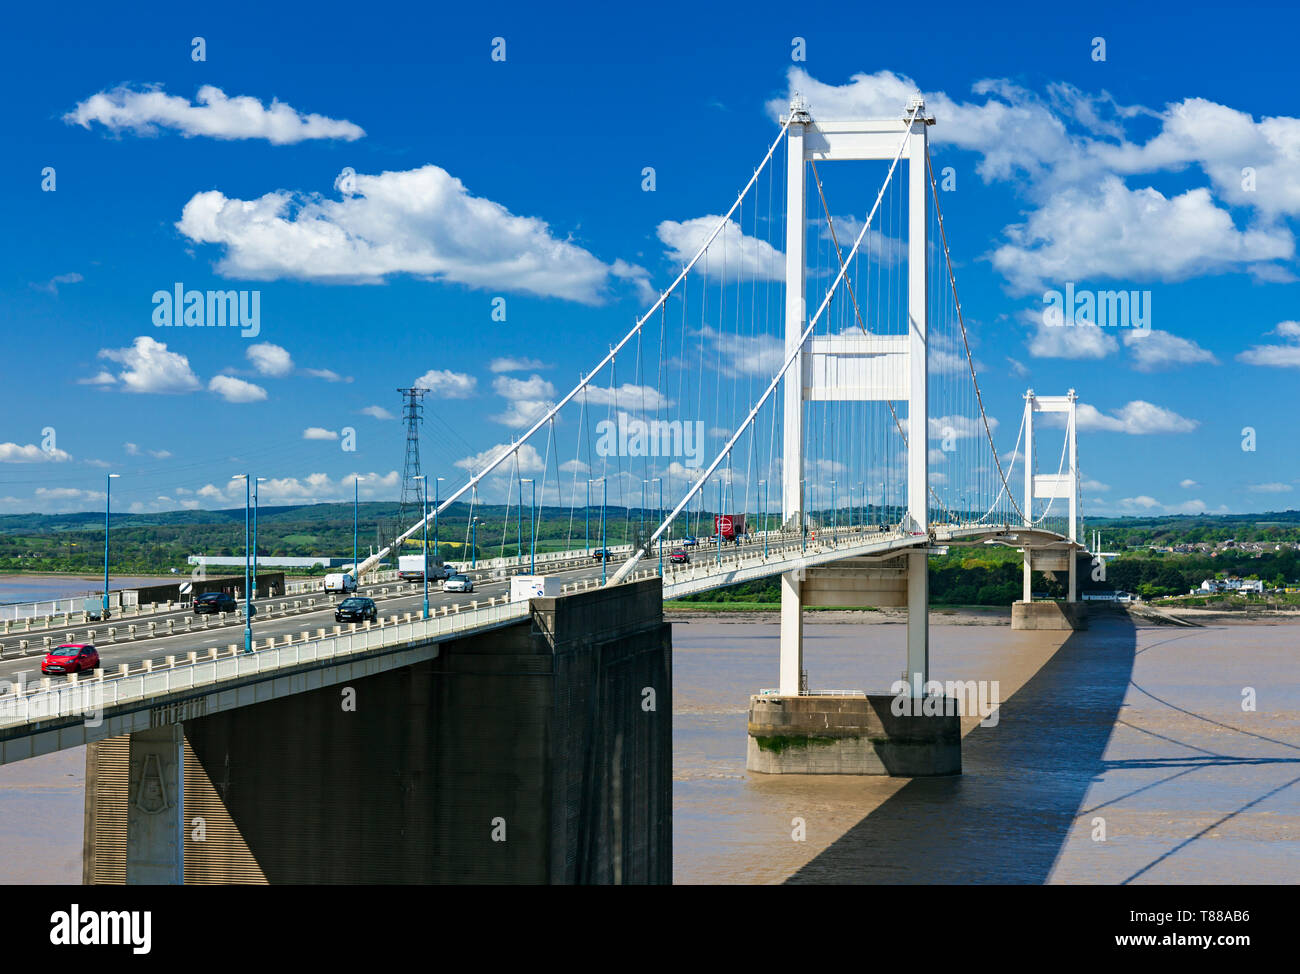 Severn Wye Bridge connecting England and Wales, looking from England to Wales. - Stock Image